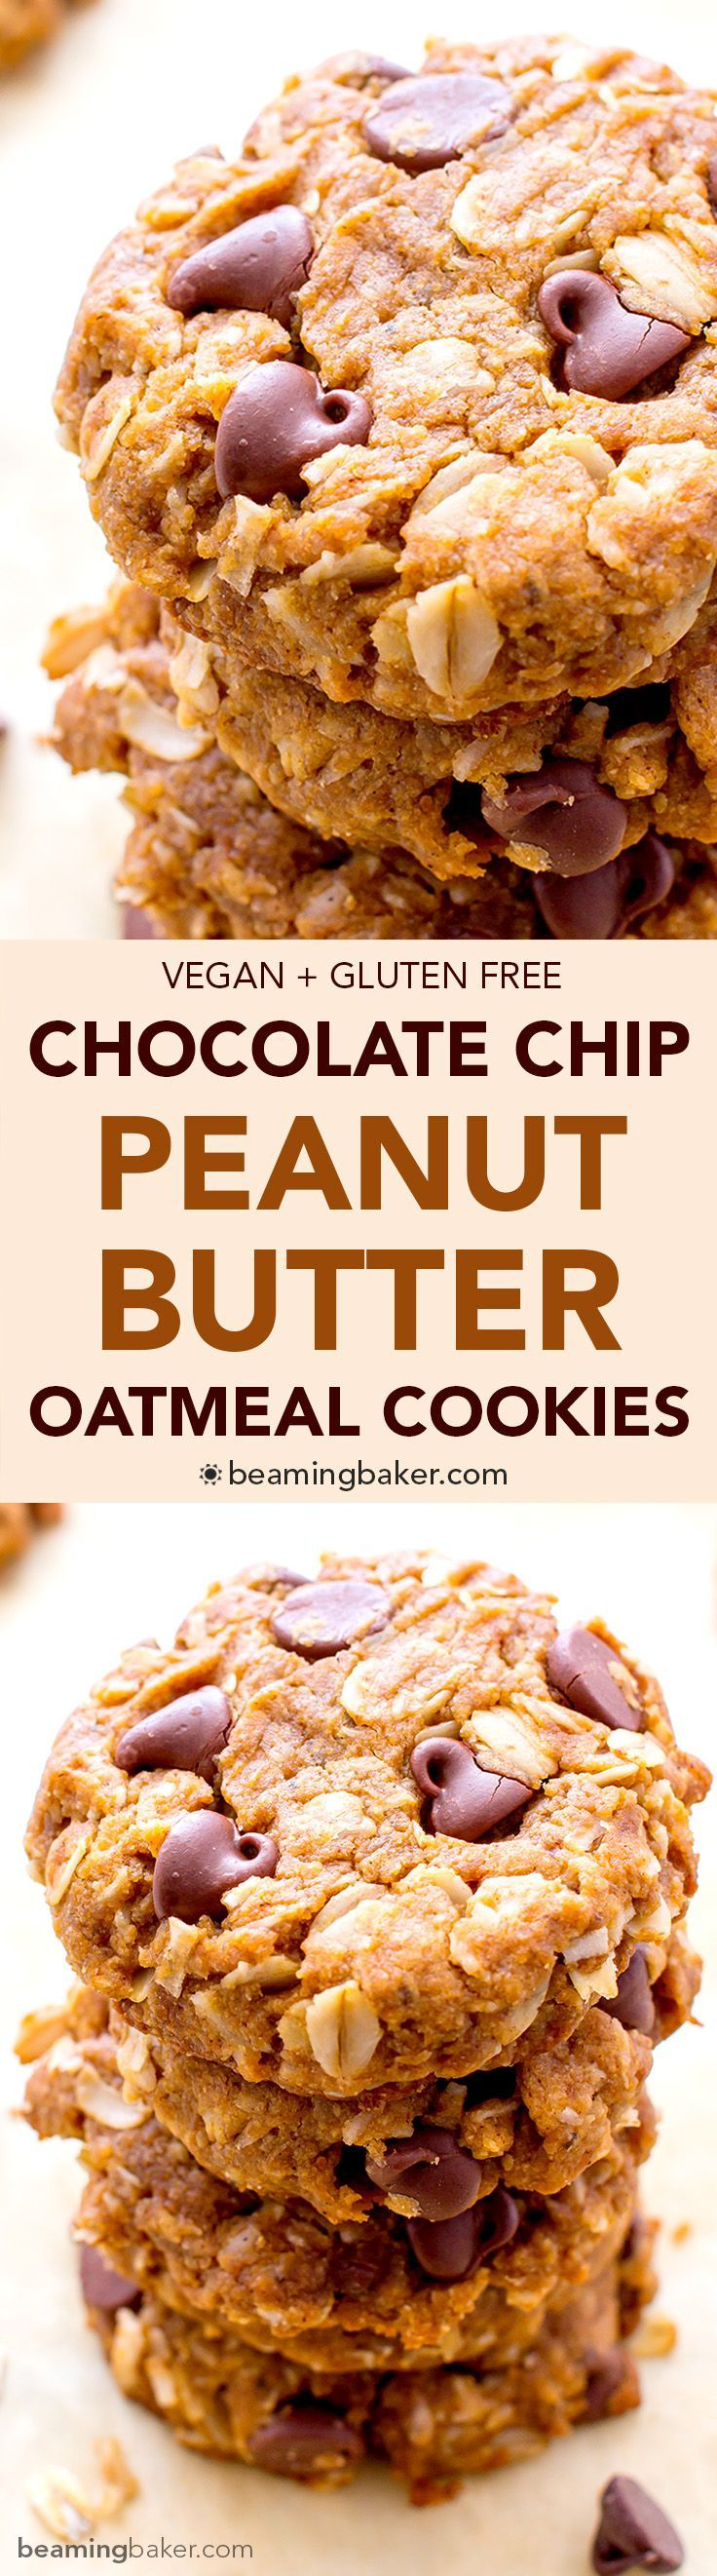 Peanut Butter Chocolate Chip Oatmeal Cookies (V+GF): An easy recipe for soft, deliciously textured cookies with oats, coconut, and LOTS of peanut butter and chocolate. #Vegan #GlutenFree | BeamingBaker.com